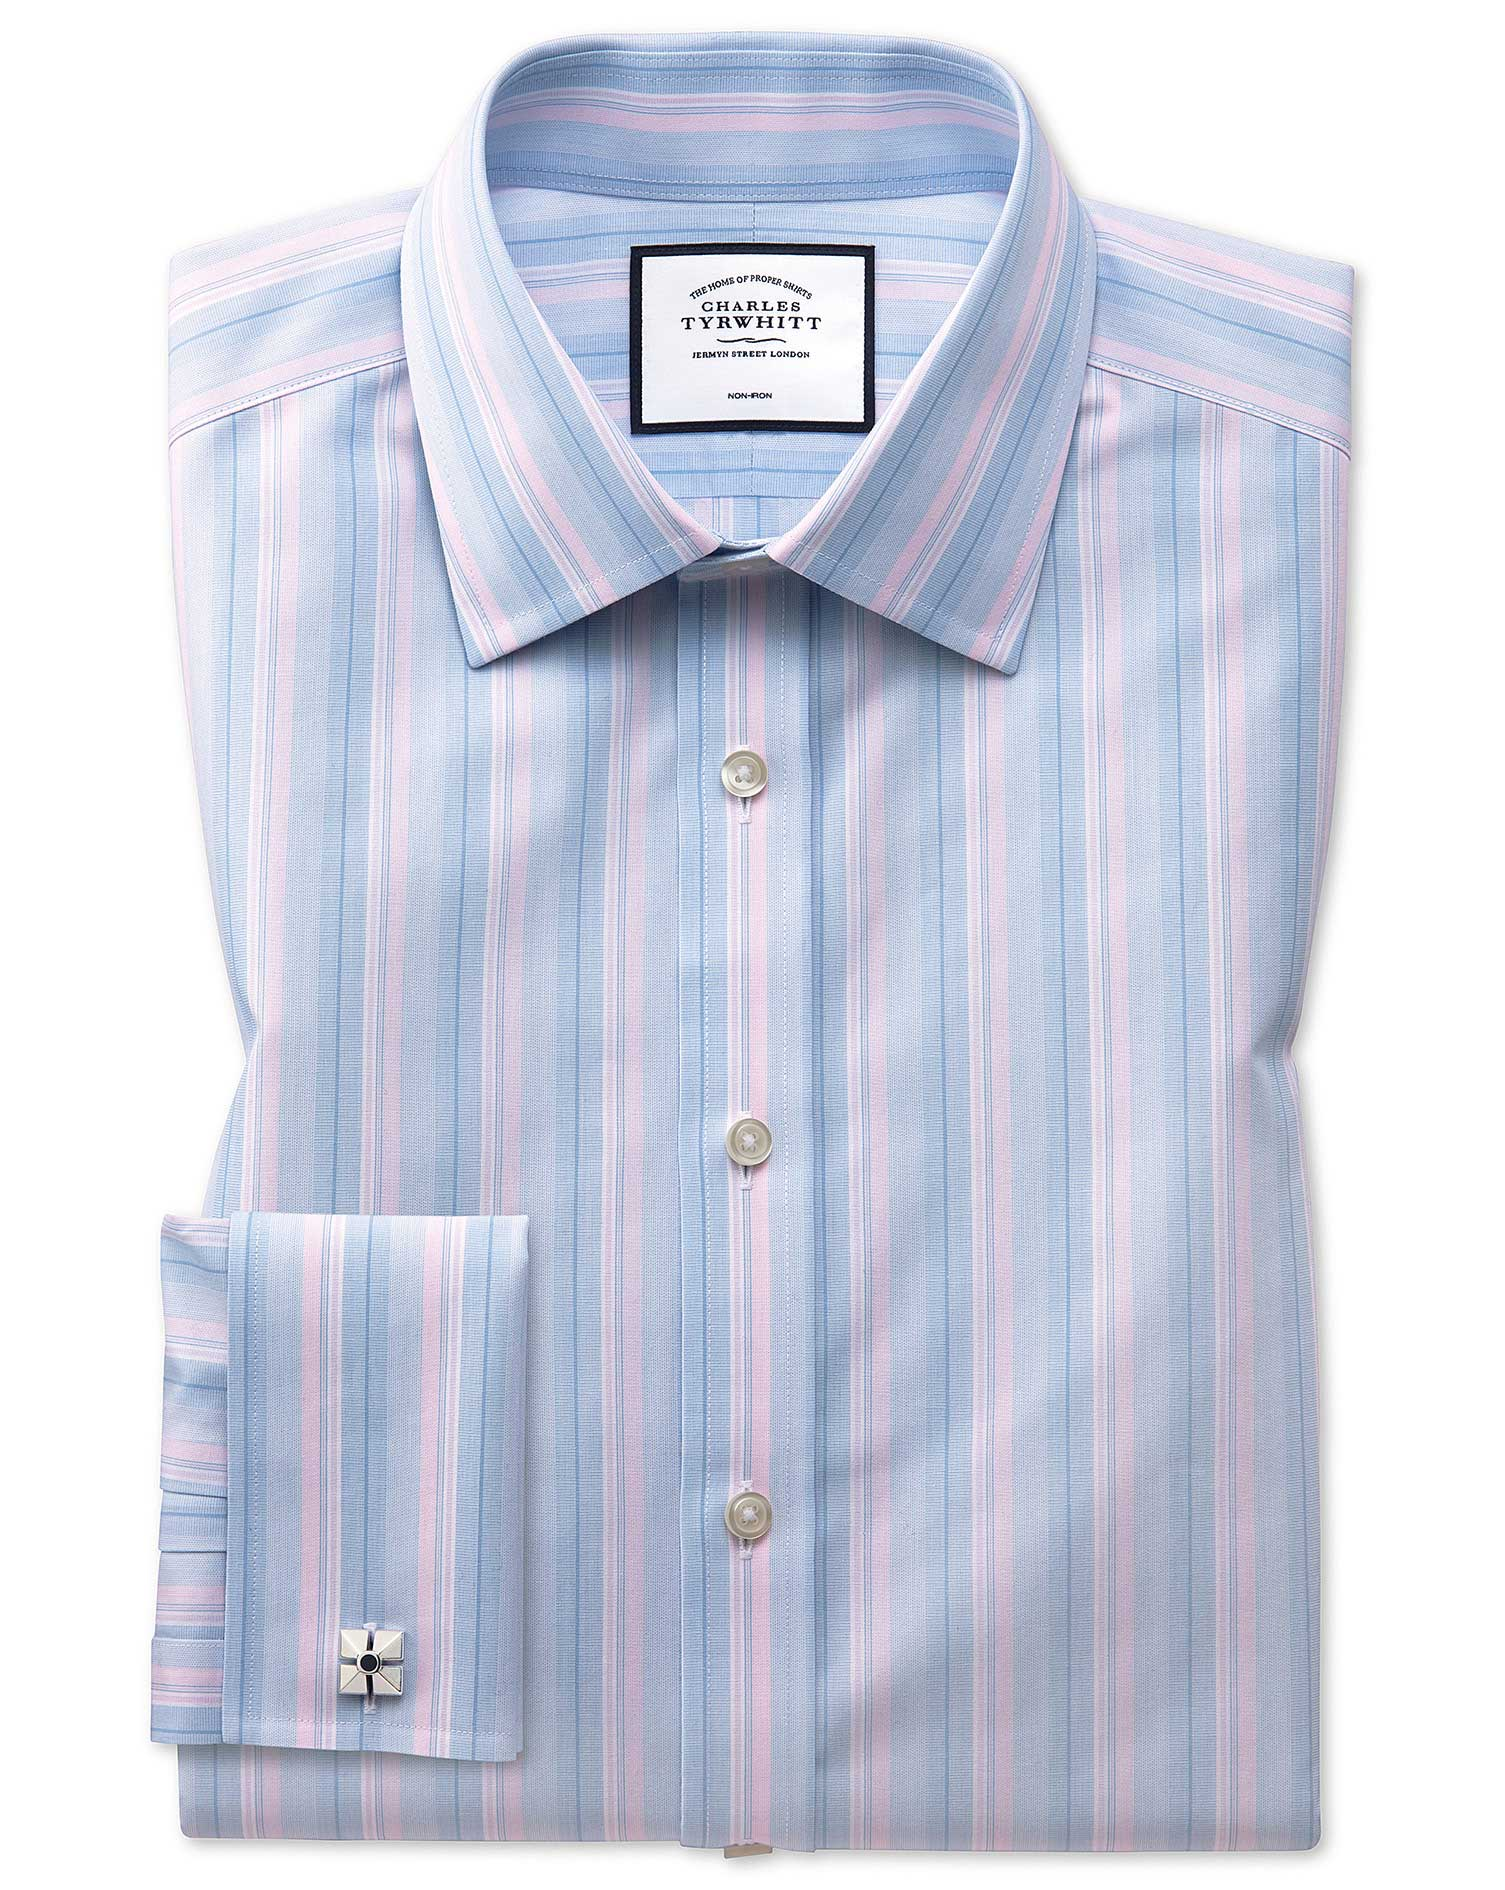 Extra Slim Fit Non-Iron Pink and Blue Multi Stripe Cotton Formal Shirt Double Cuff Size 16.5/35 by C